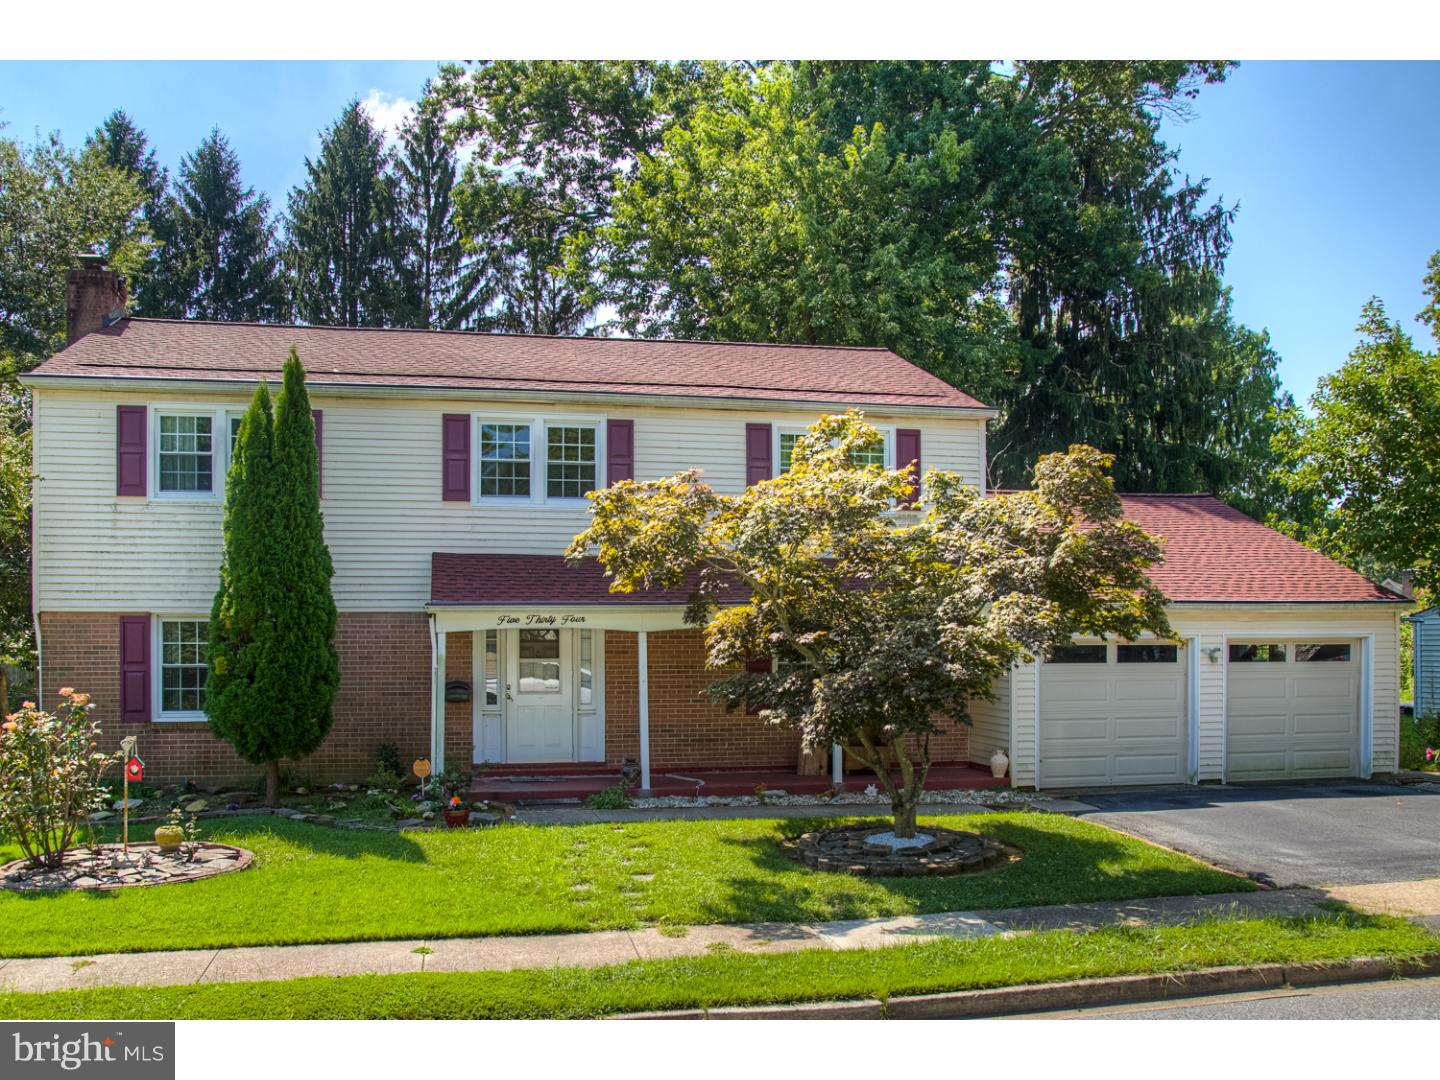 534 WESTWOOD DRIVE, DOVER, Delaware